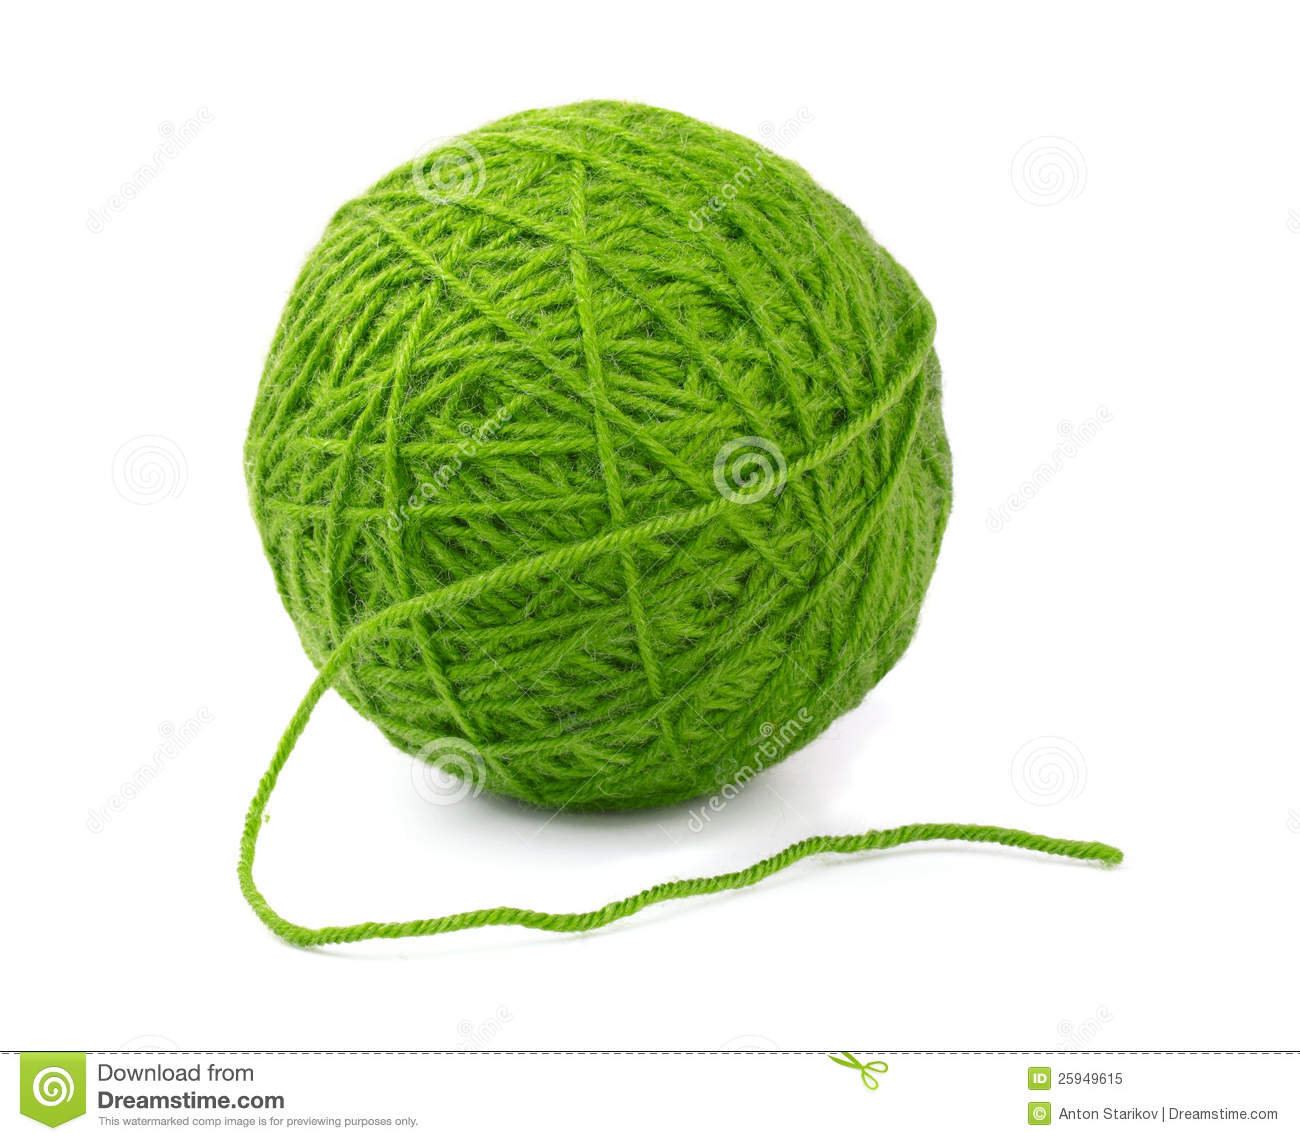 ball of yarn - photo #23